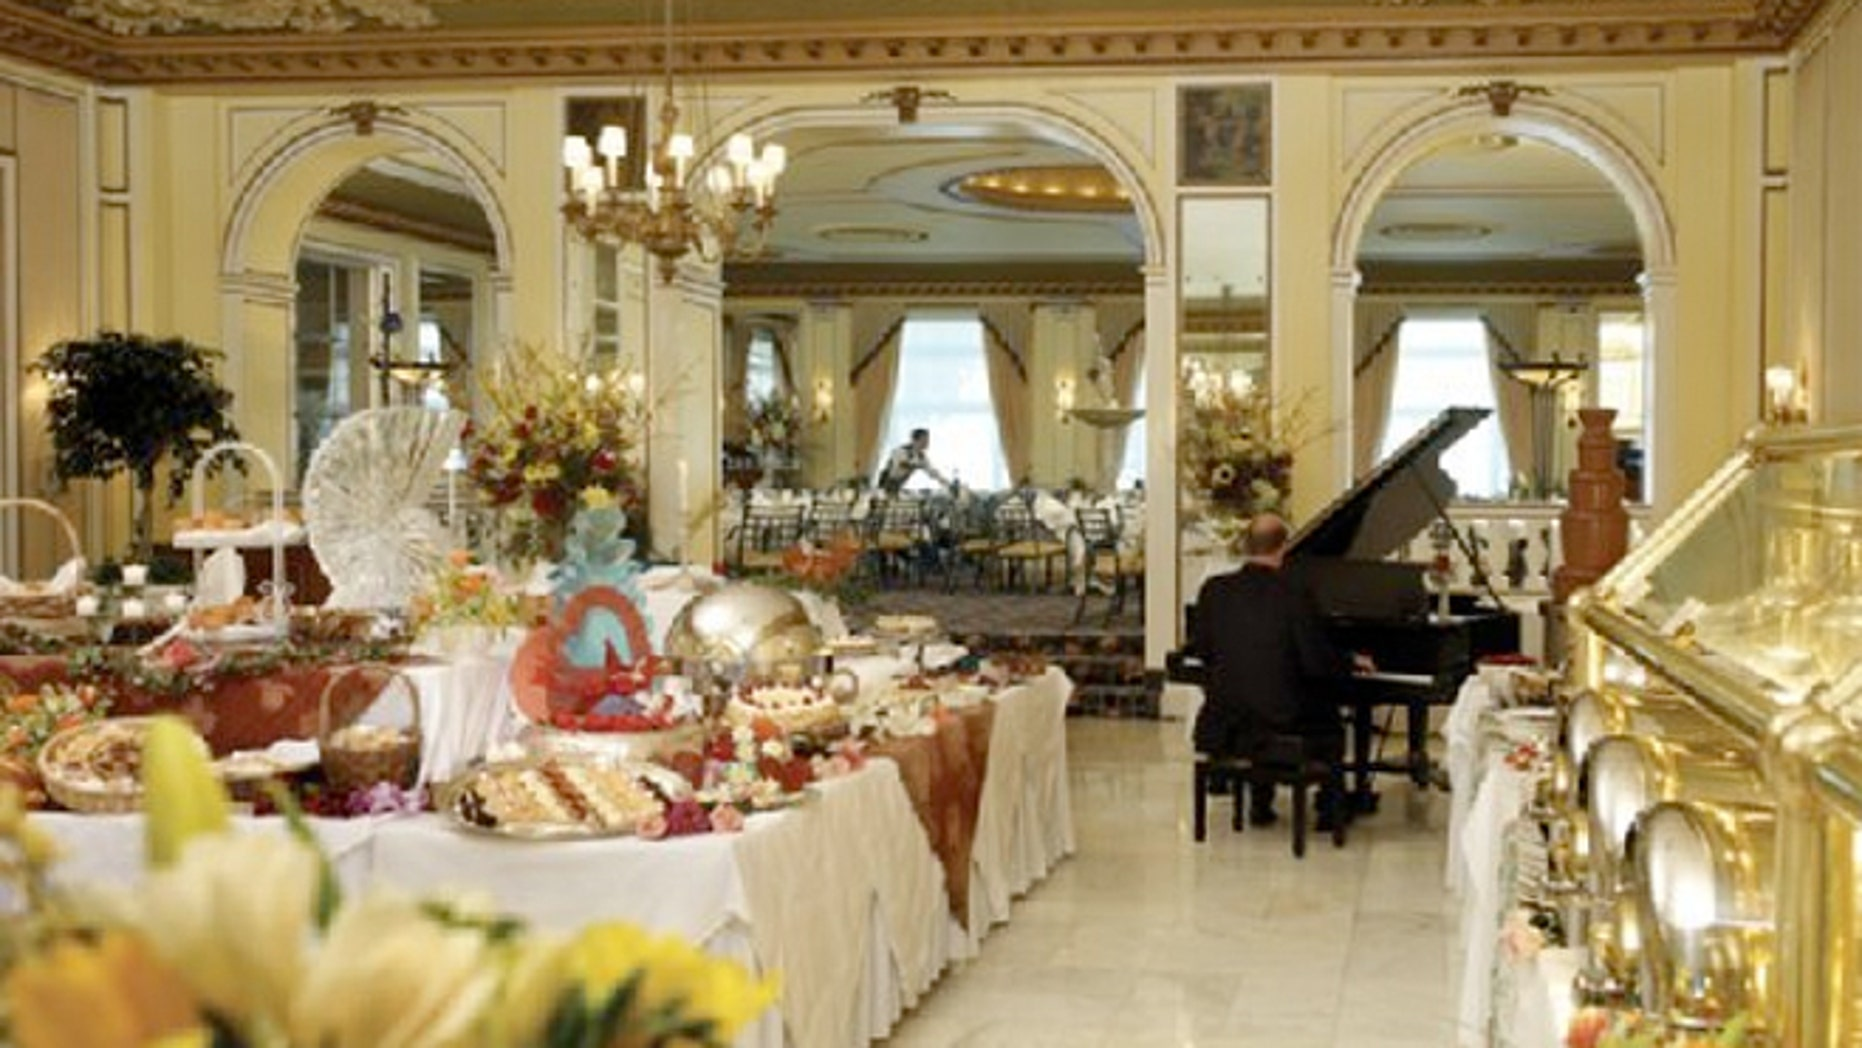 Sunday Brunch at the historic Broadmoor's Lake Terrace Dining Room is a delicious and decadant experience.